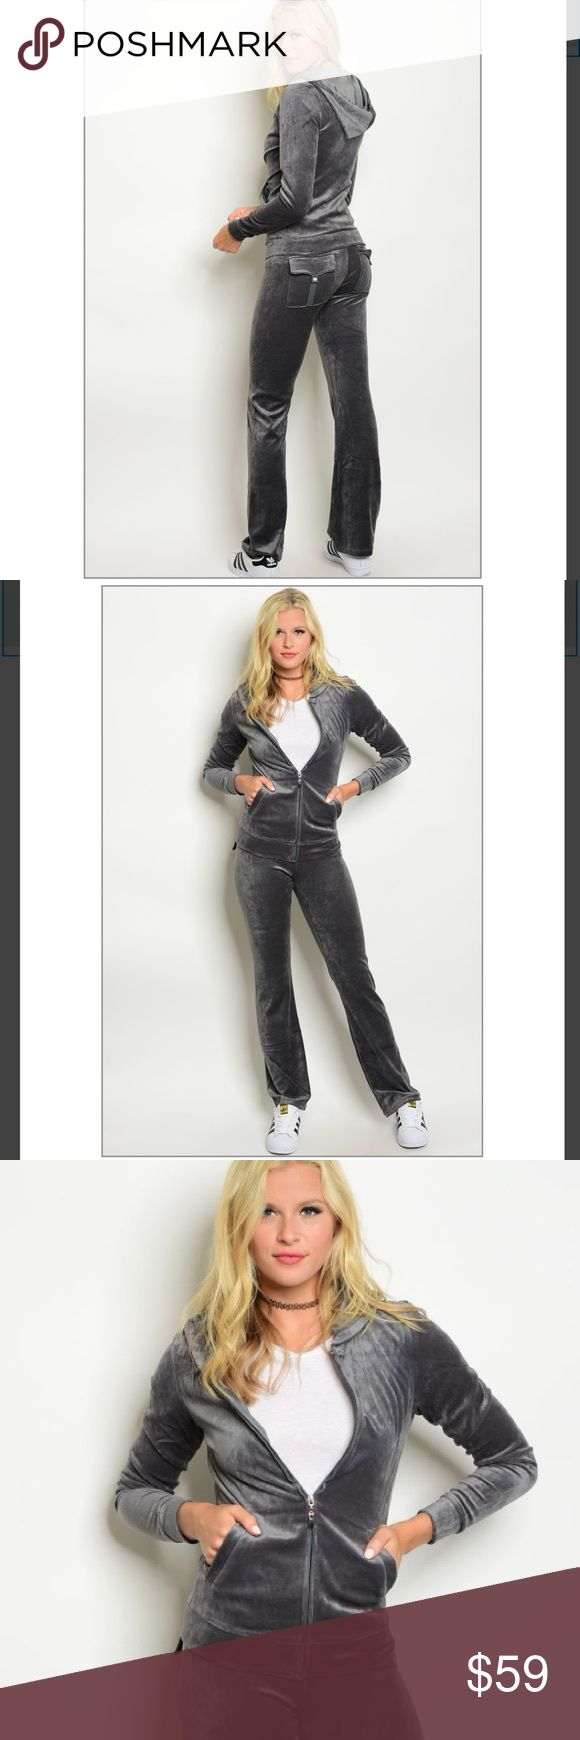 GRAY VELOUR LOUNGE SUIT YES!!! MUST HAVE!! VELOUR LOUNGE SUIT. COMFY COZY. PERFECT LOUNGE WEAR FOR A DAY IN OR LOOK AMAZING EFFORTLESSLY IN THIS SUIT FOR A DAY OUT. FEATURES SLIM FIT. BACK POCKETS. I OPEN AND INSPECT EVERY ITEM. I TAKE PHOTOS OF EVERY ITEM. THE DORM BOUTIQUE Pants Track Pants & Joggers